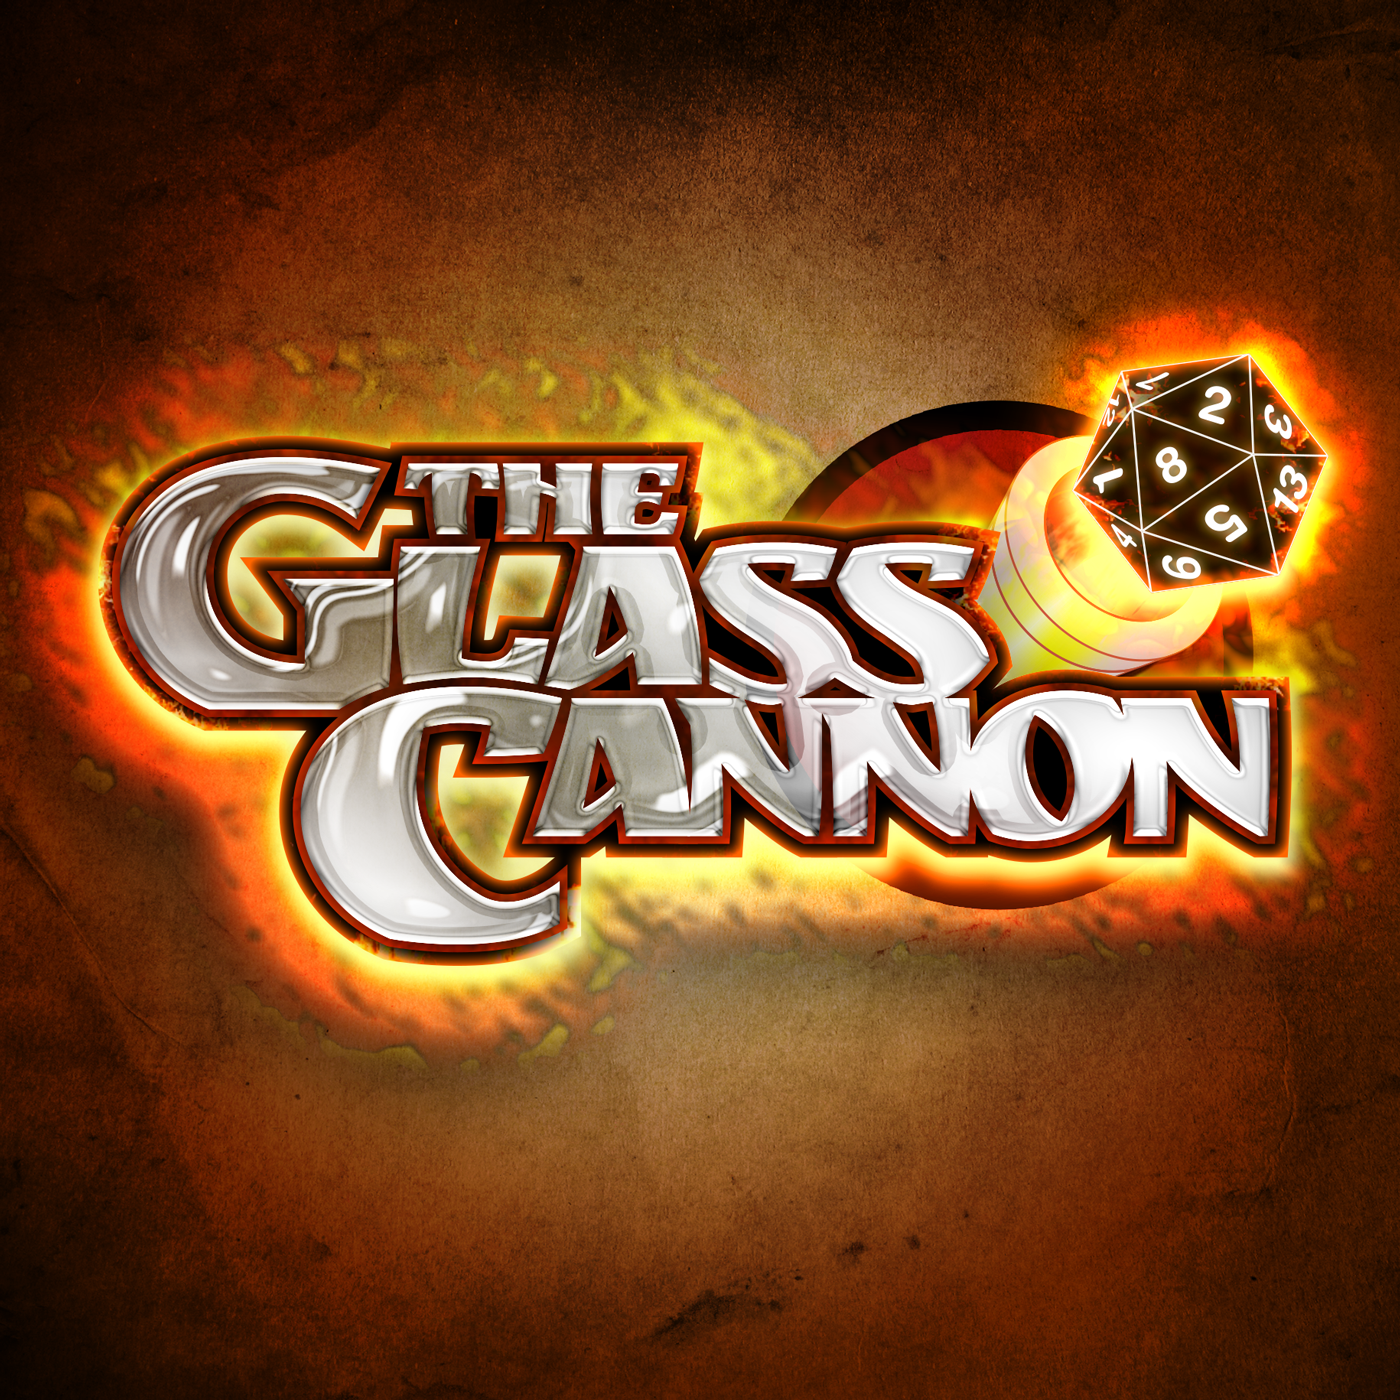 GLASSCANNON_FIN_edit_1400x1400.png